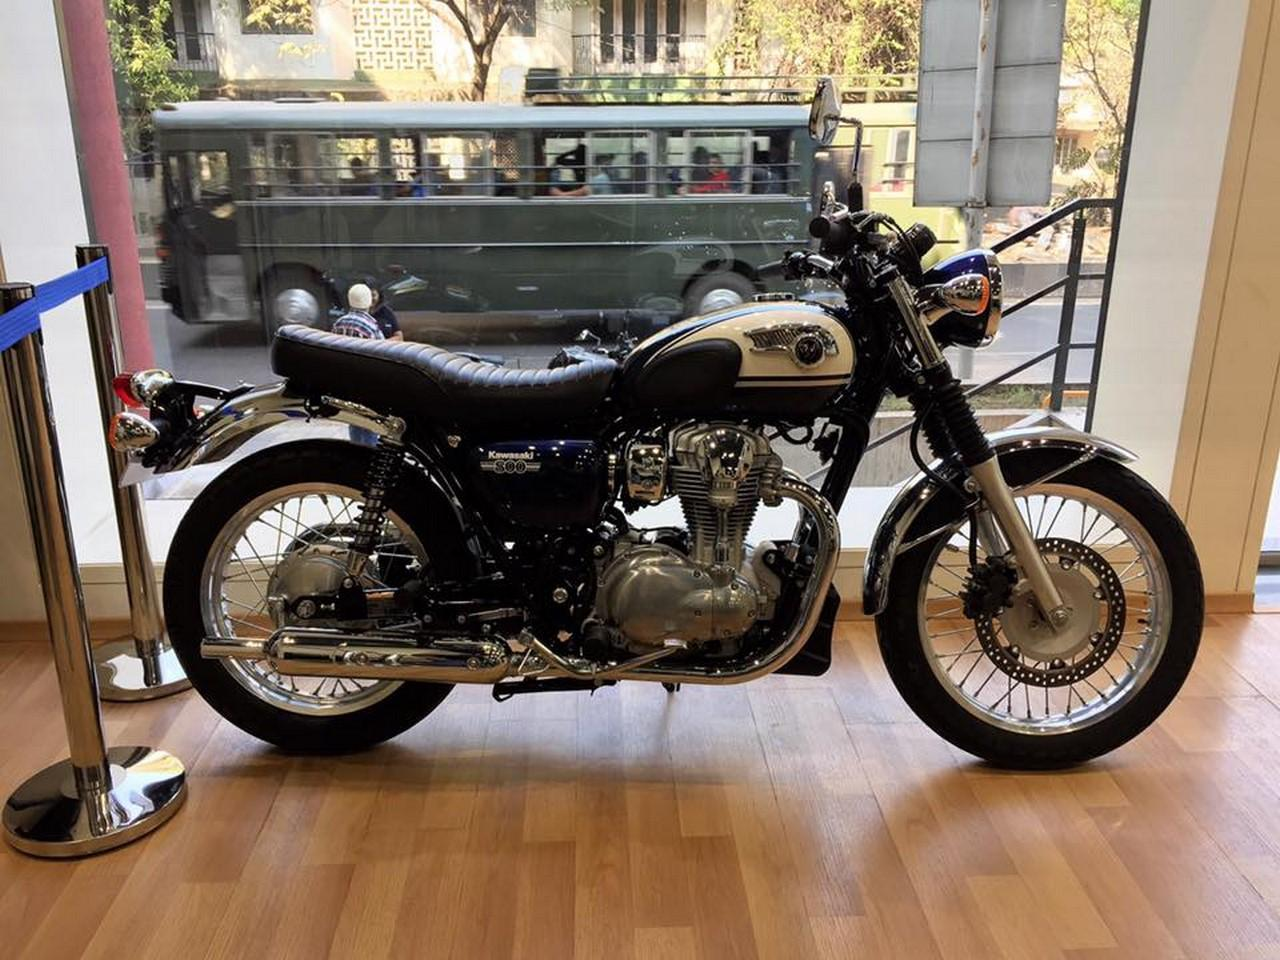 kawasaki w800 displayed in pune to gauge customer response the retro style bike has an attractive old school styling which is enhanced by good attention to detail